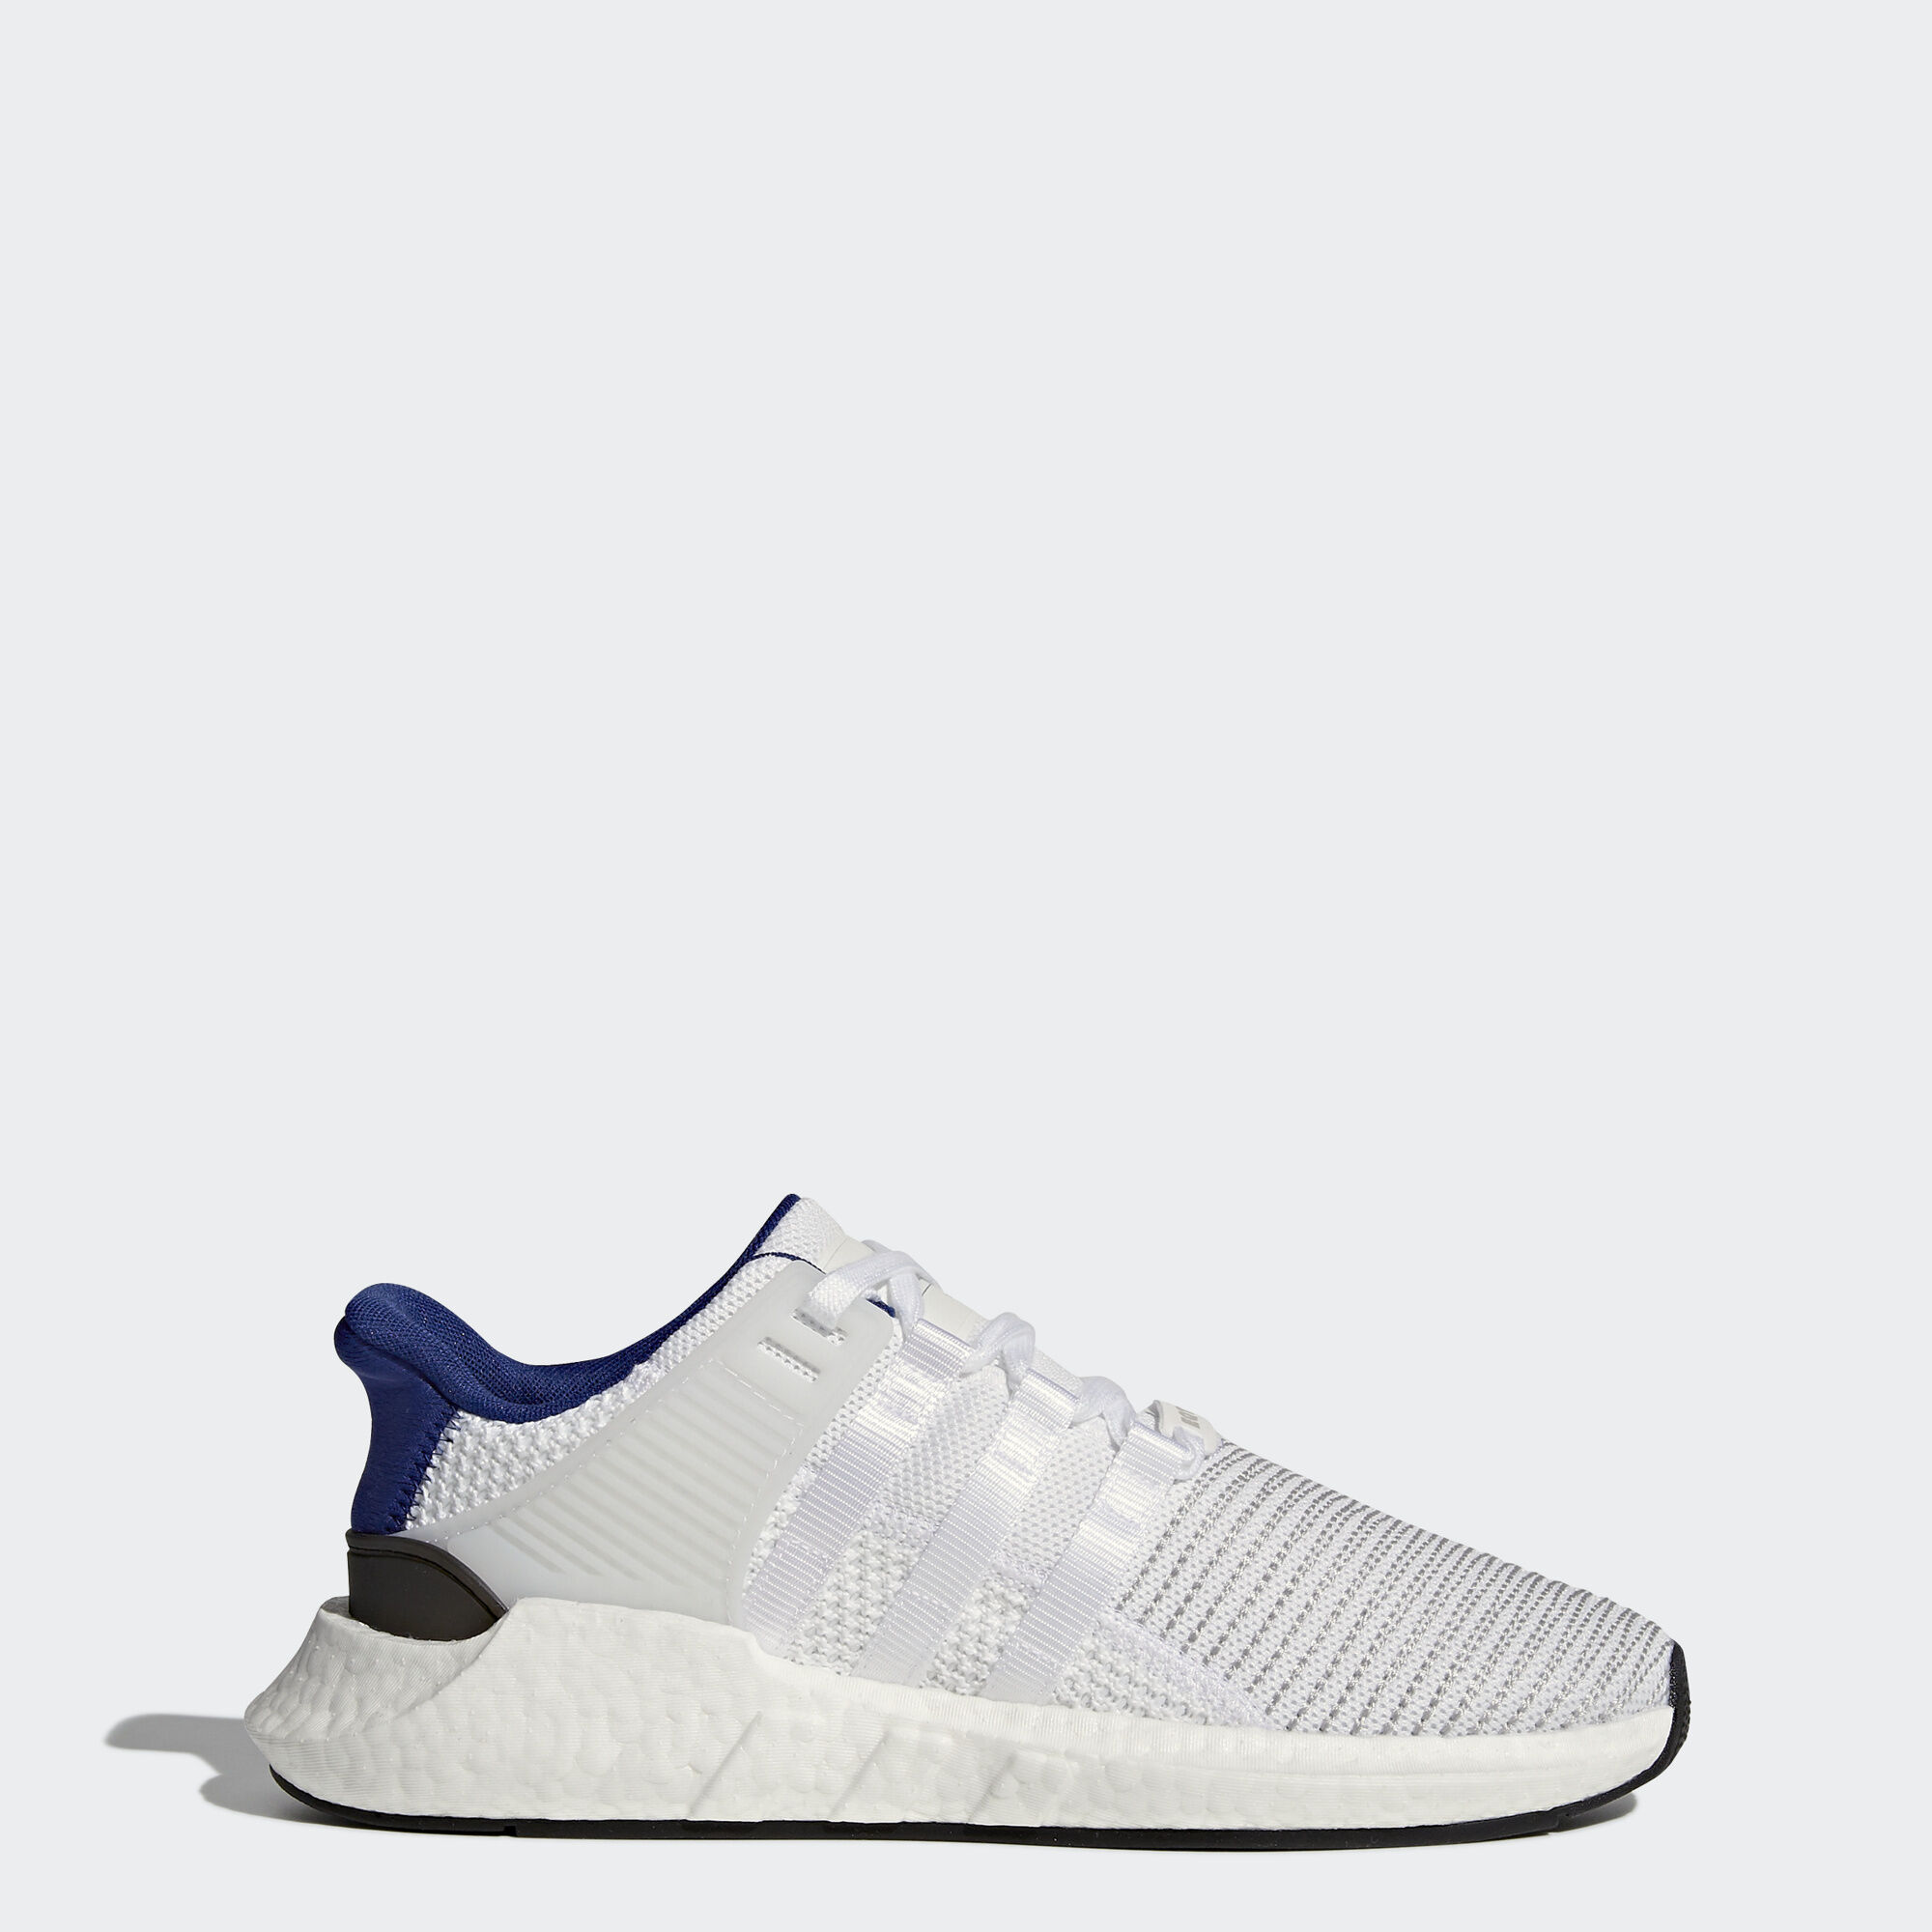 adidas Originals Eqt Support ADV Primeknit Men's Running Shoes